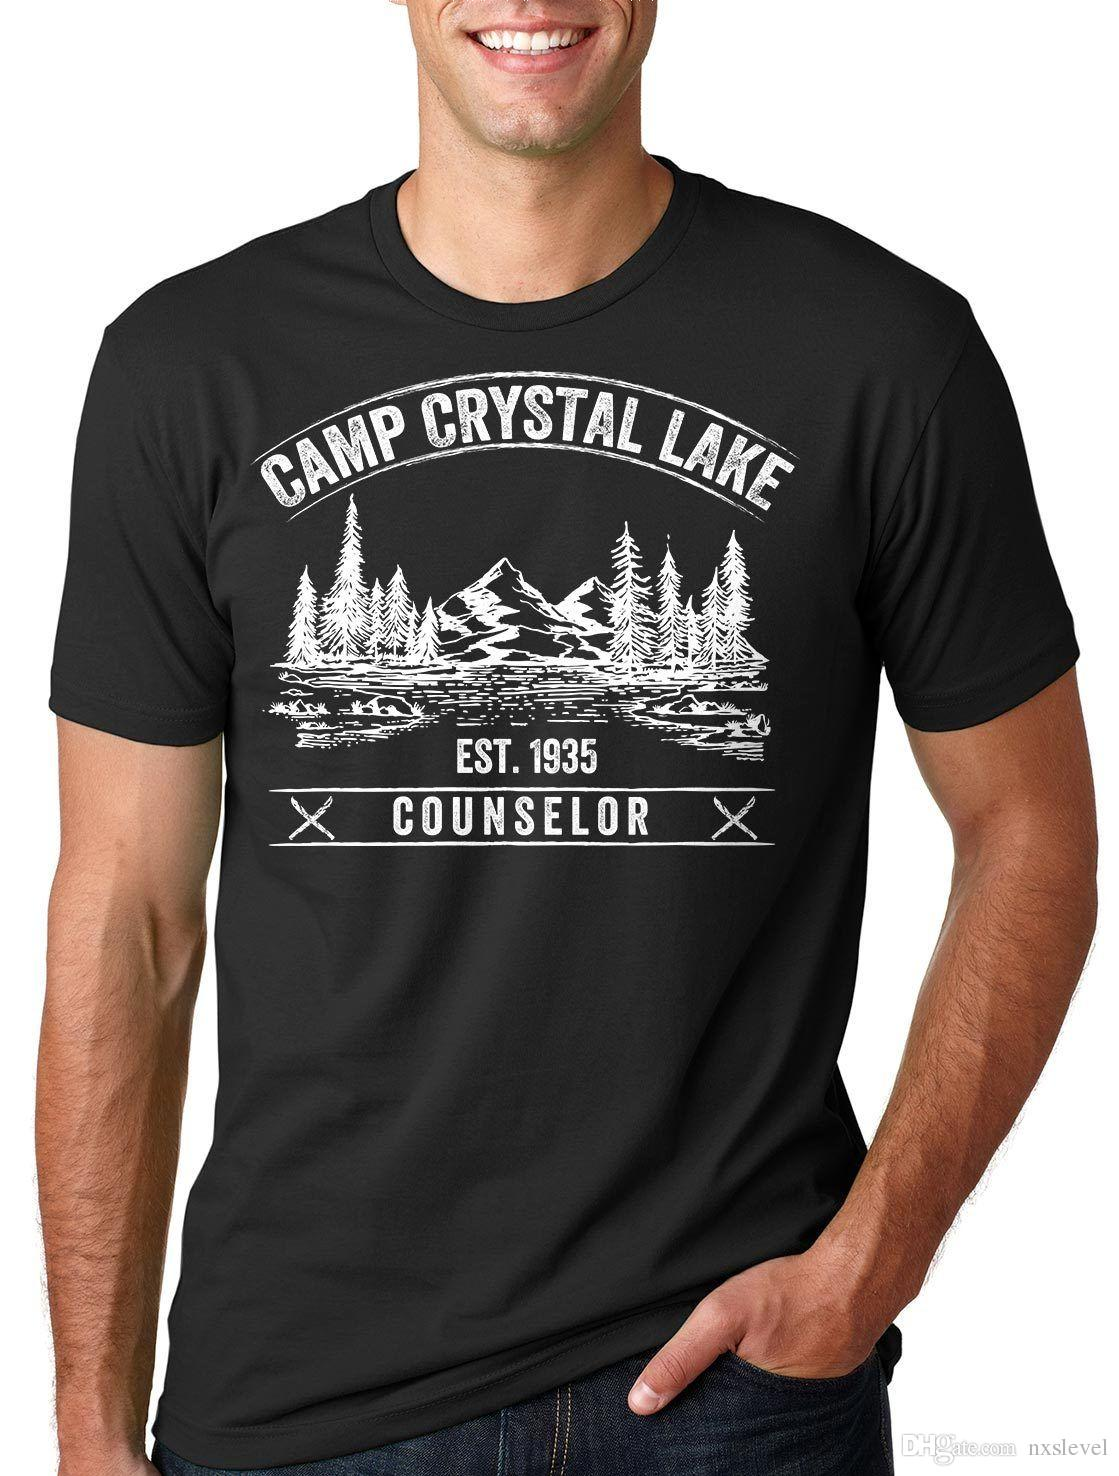 00e11dca4e2c Camp Crystal Lake T Shirt Counselor Tee Shirt Camp Camping T Shirt Summer Tee  Tee Shirts Mens T Shirts From Nxslevel